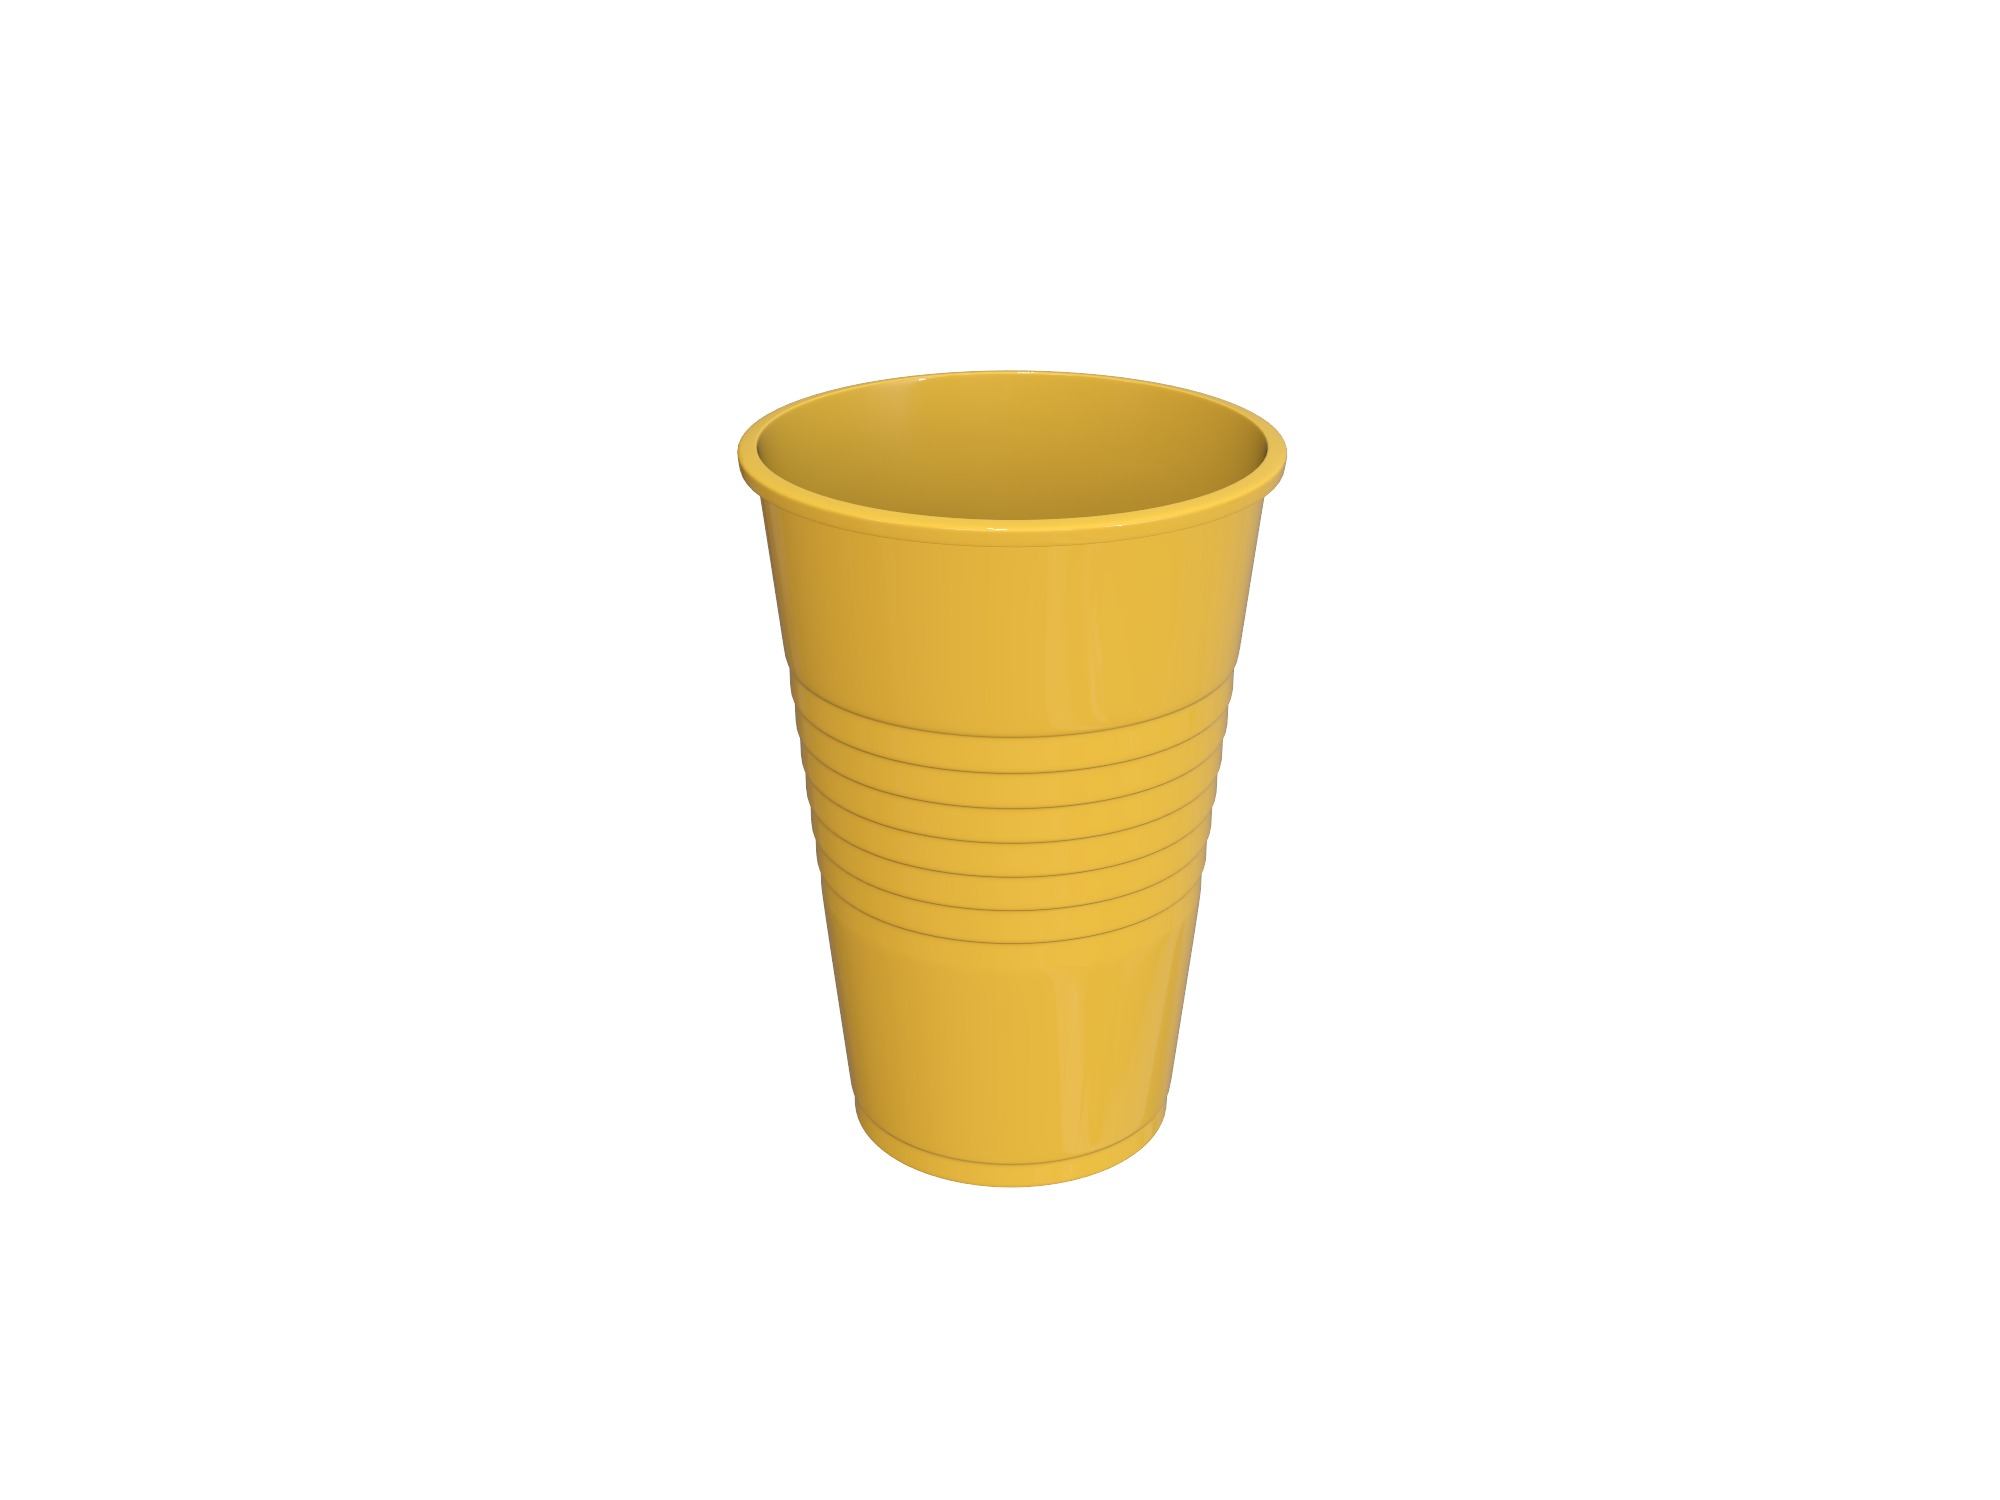 Plastic cup - 3D design by Vectary assets Jun 3, 2018